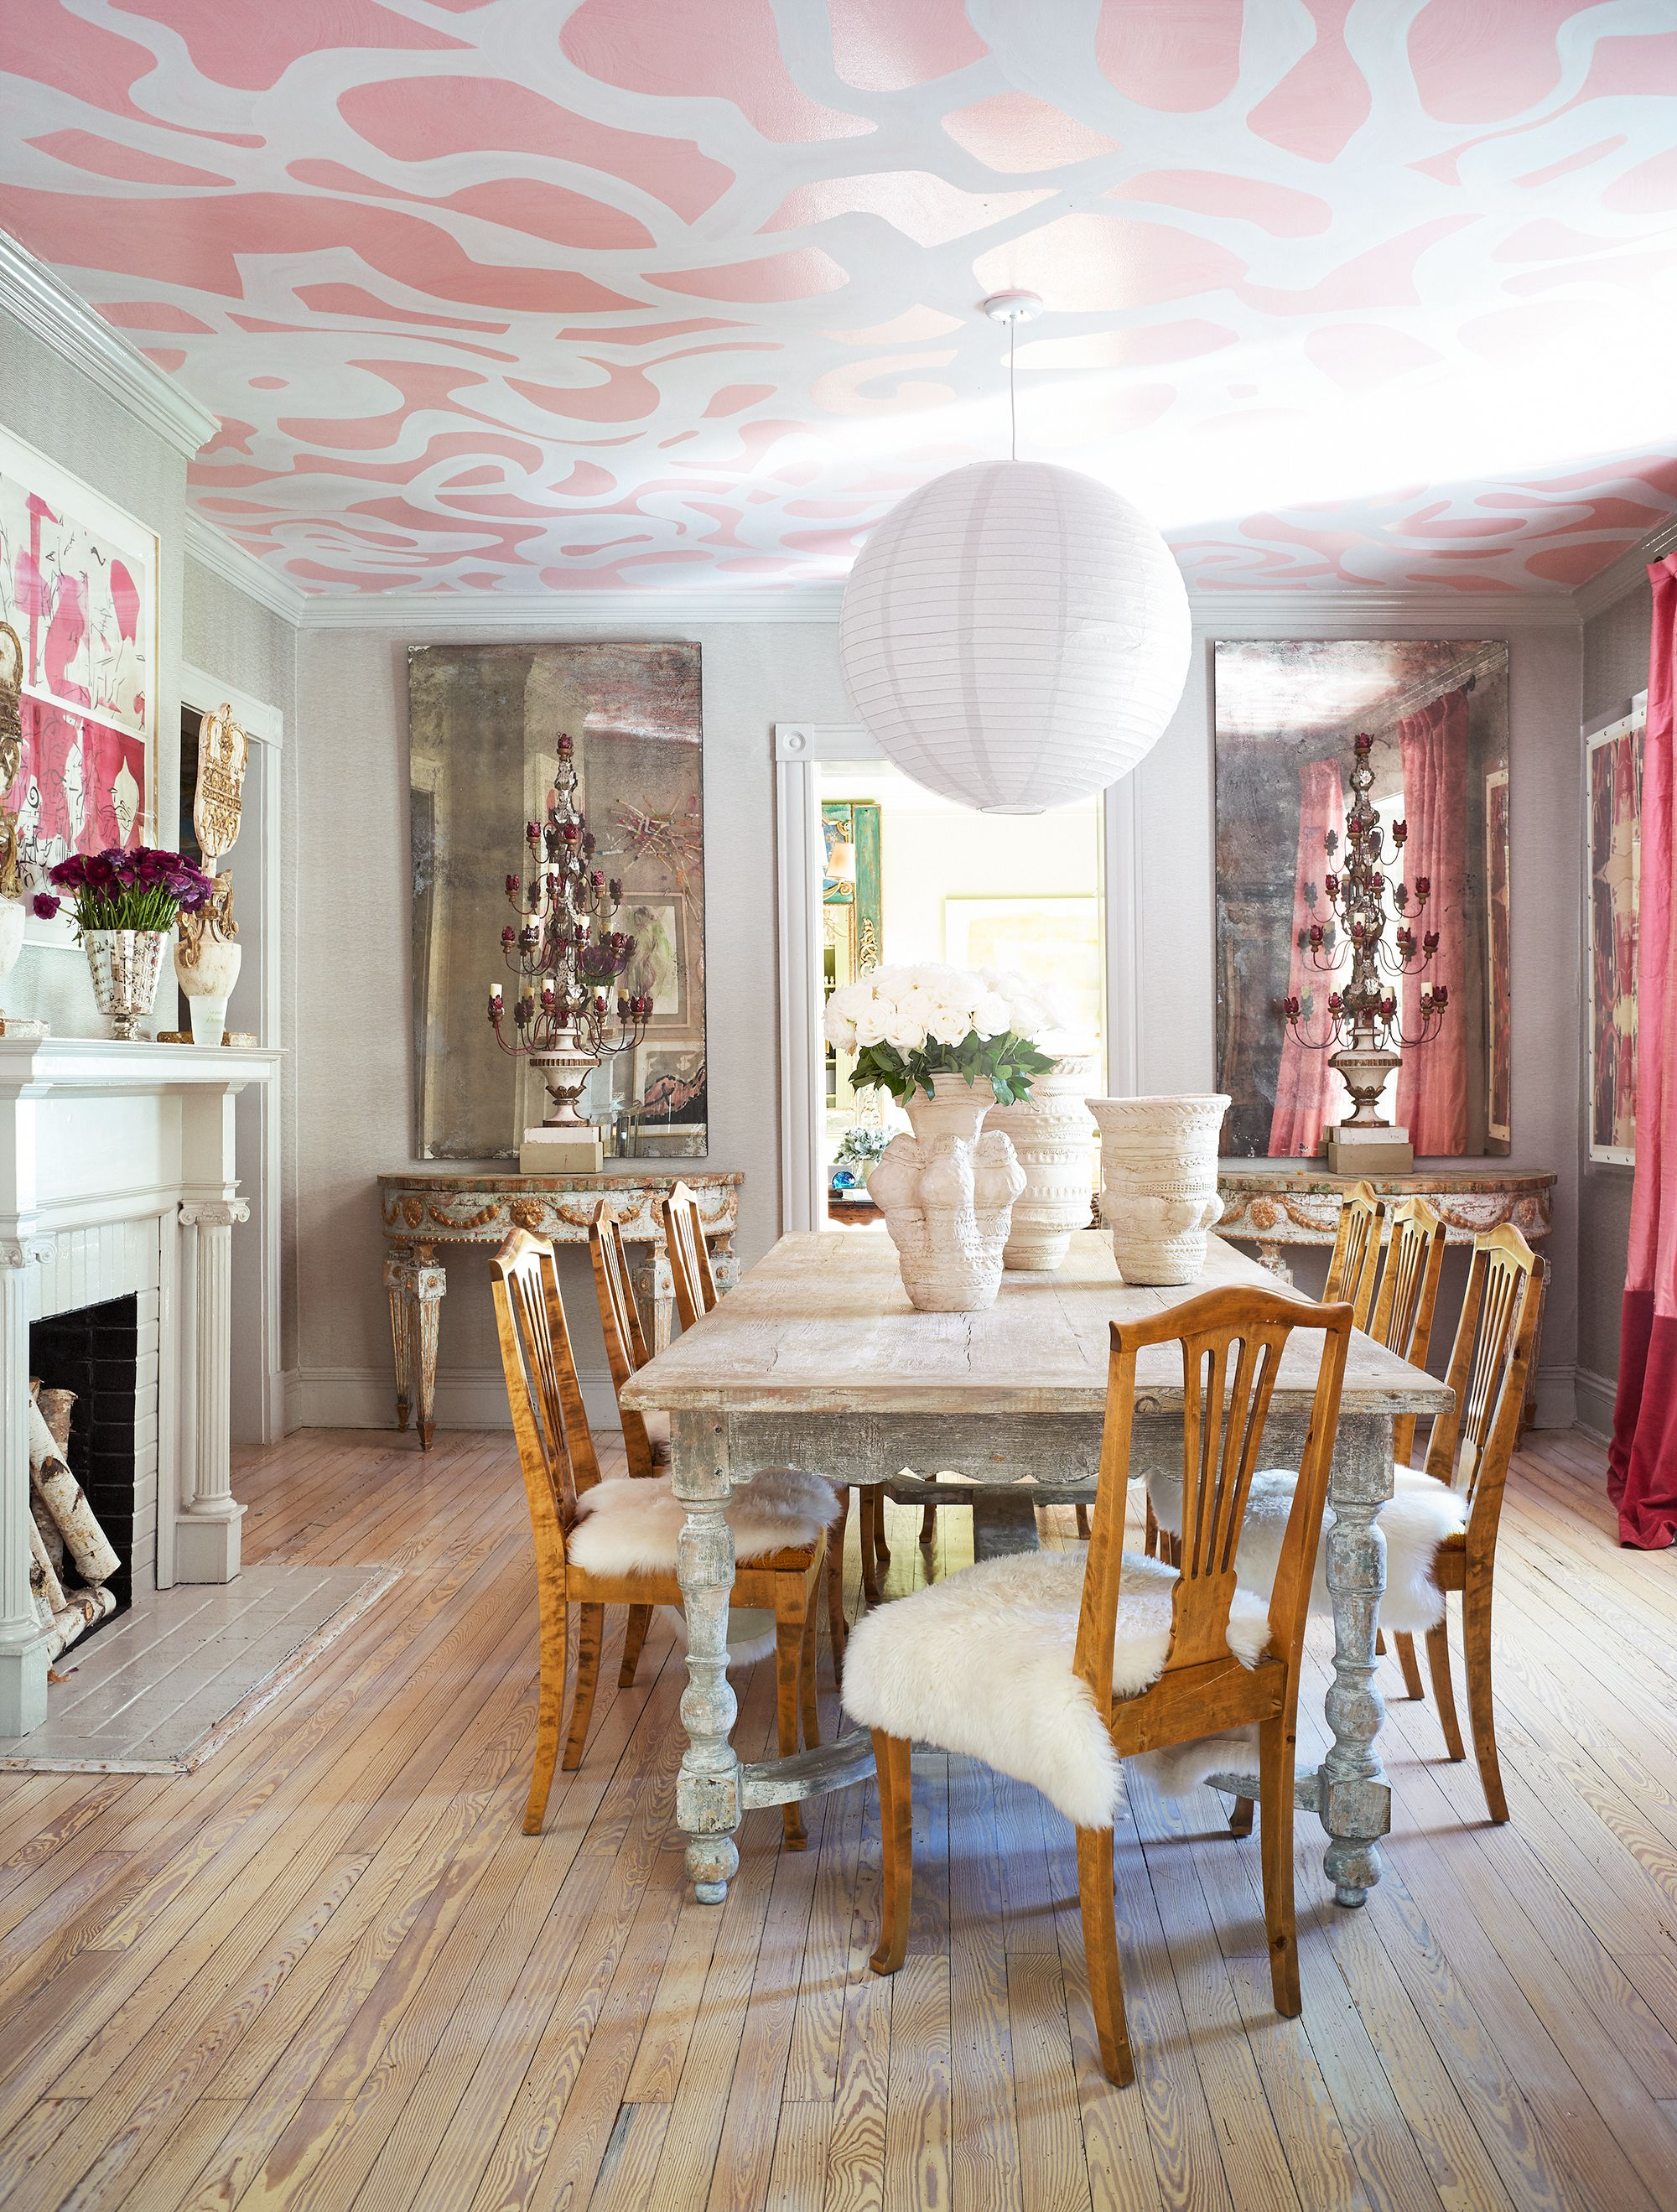 20 Painted Ceilings That Make The